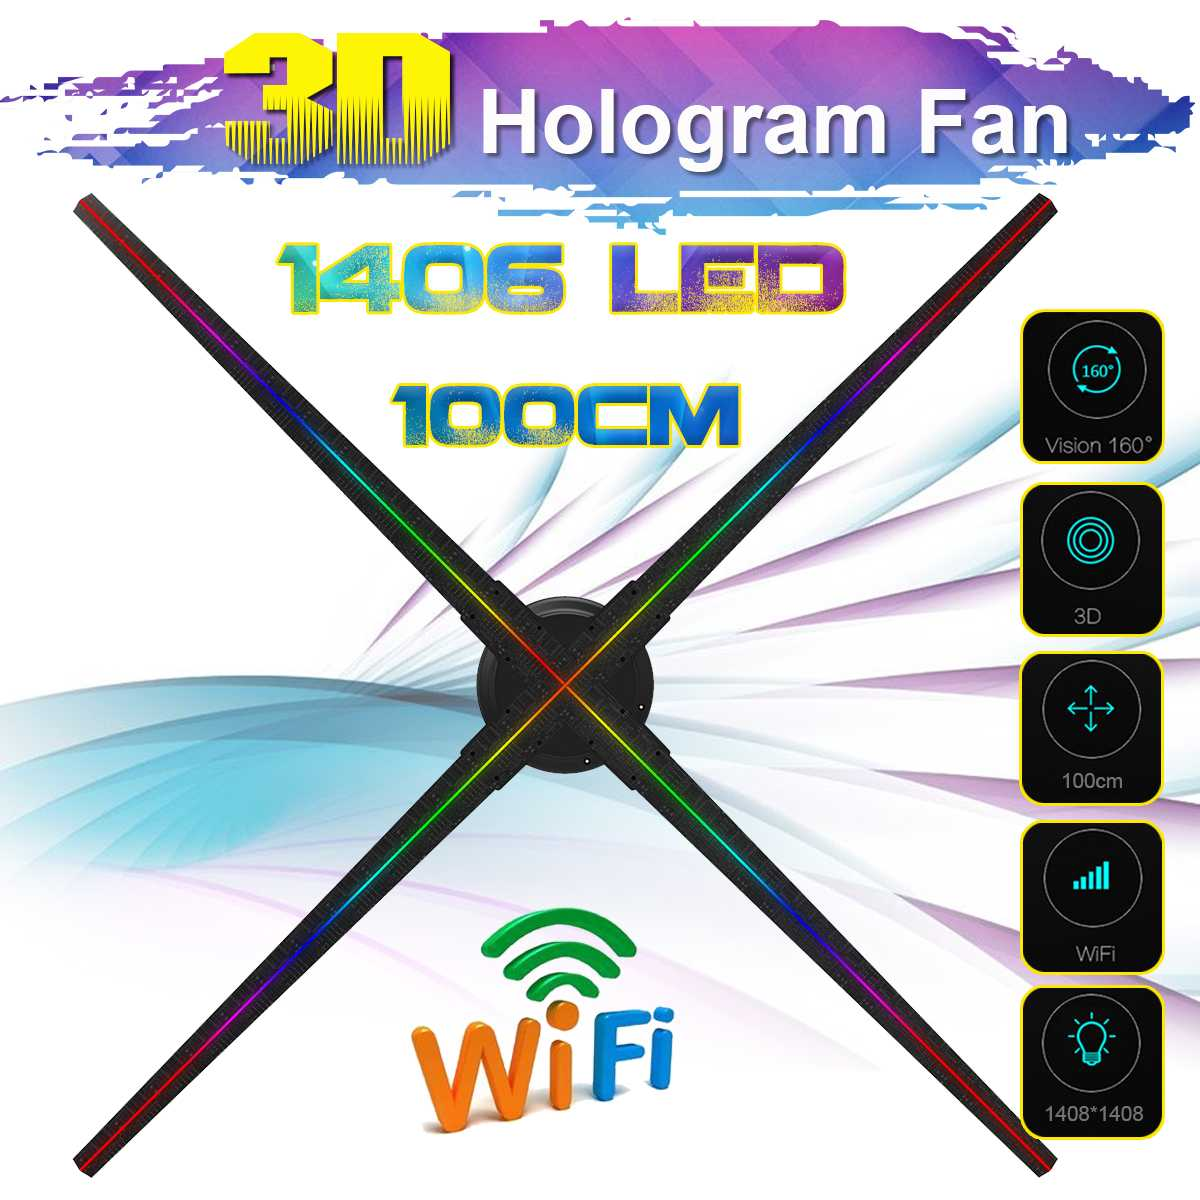 42-100cm LED WIFI 3D Holographic Projector Display Advertising Fan Hologram Lamp